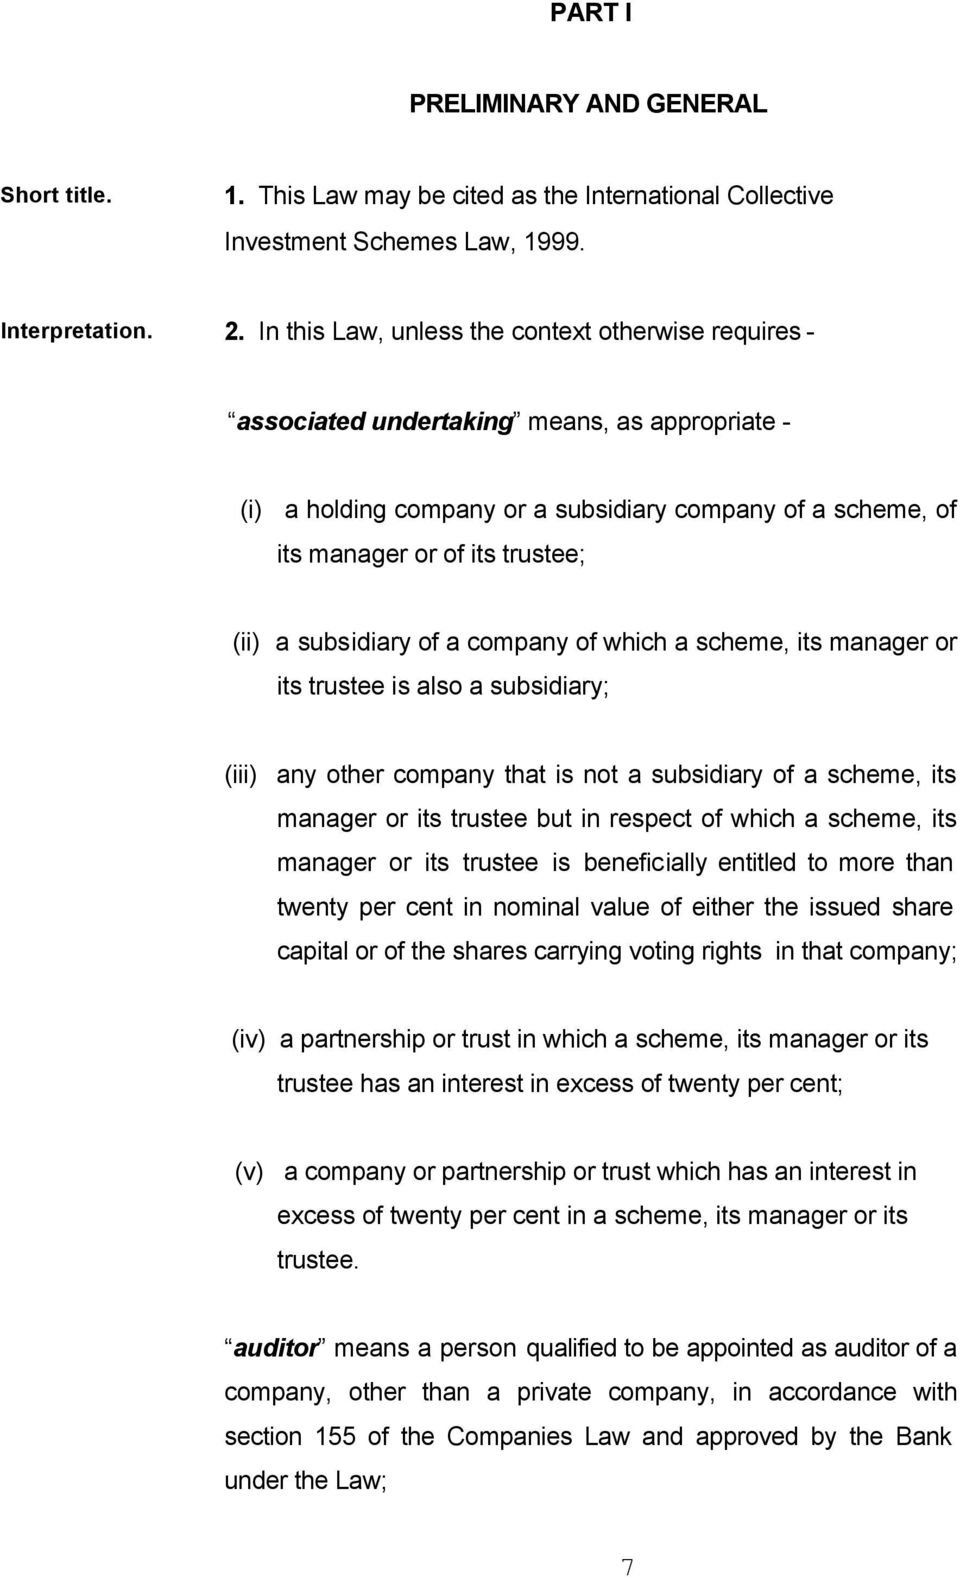 subsidiary of a company of which a scheme, its manager or its trustee is also a subsidiary; (iii) any other company that is not a subsidiary of a scheme, its manager or its trustee but in respect of